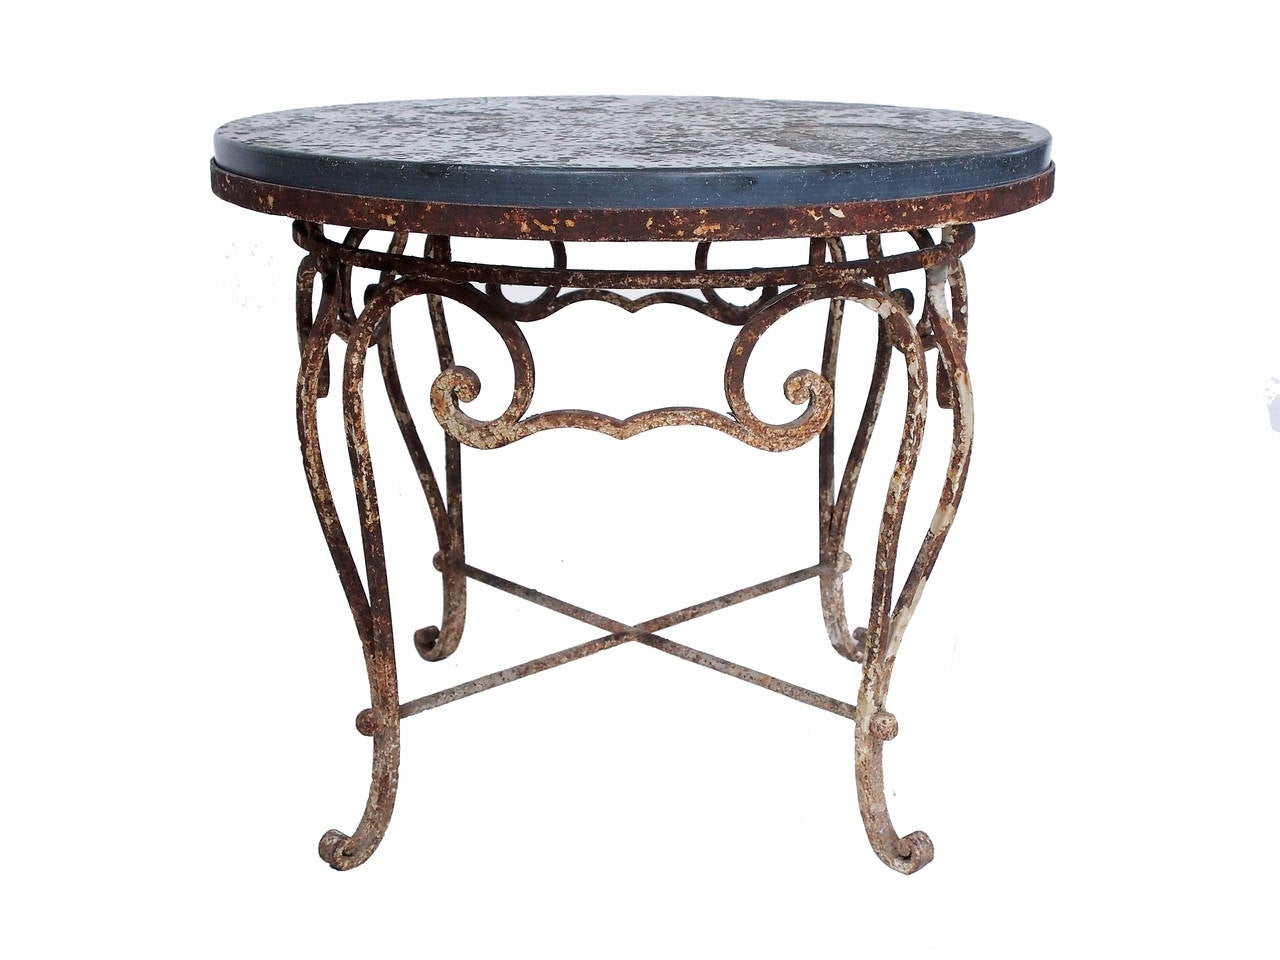 Vintage Iron And Belgian Bluestone Round Table At 1stdibs